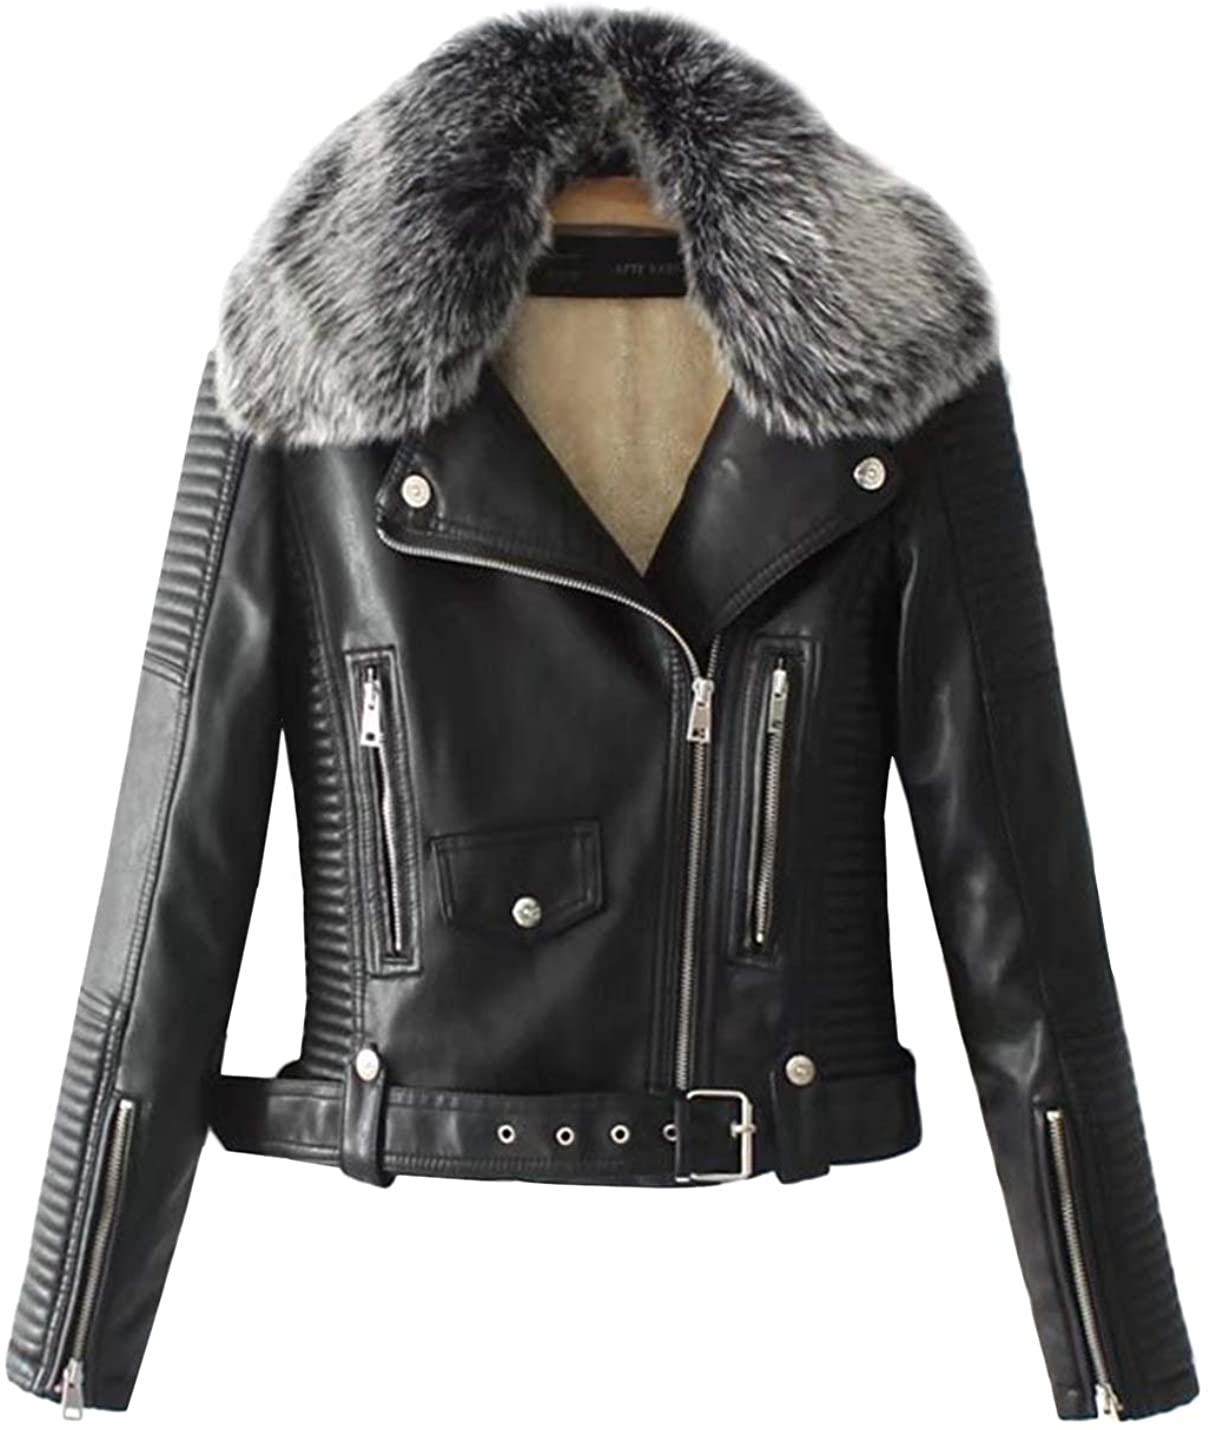 faux leather coats & jackets